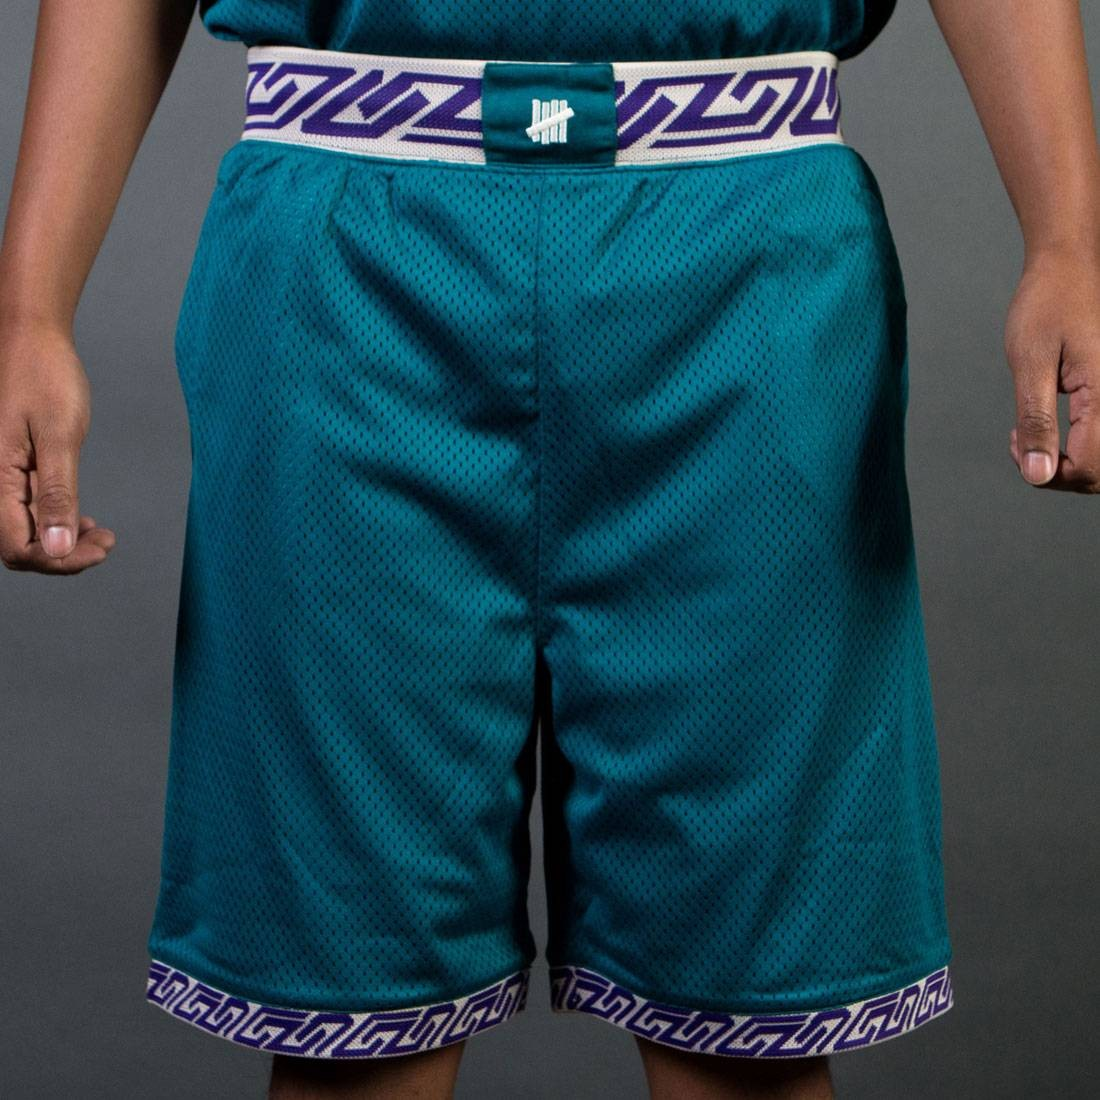 new arrival 565cb 89267 Undefeated Men Authentic Basketball Shorts (teal / green)